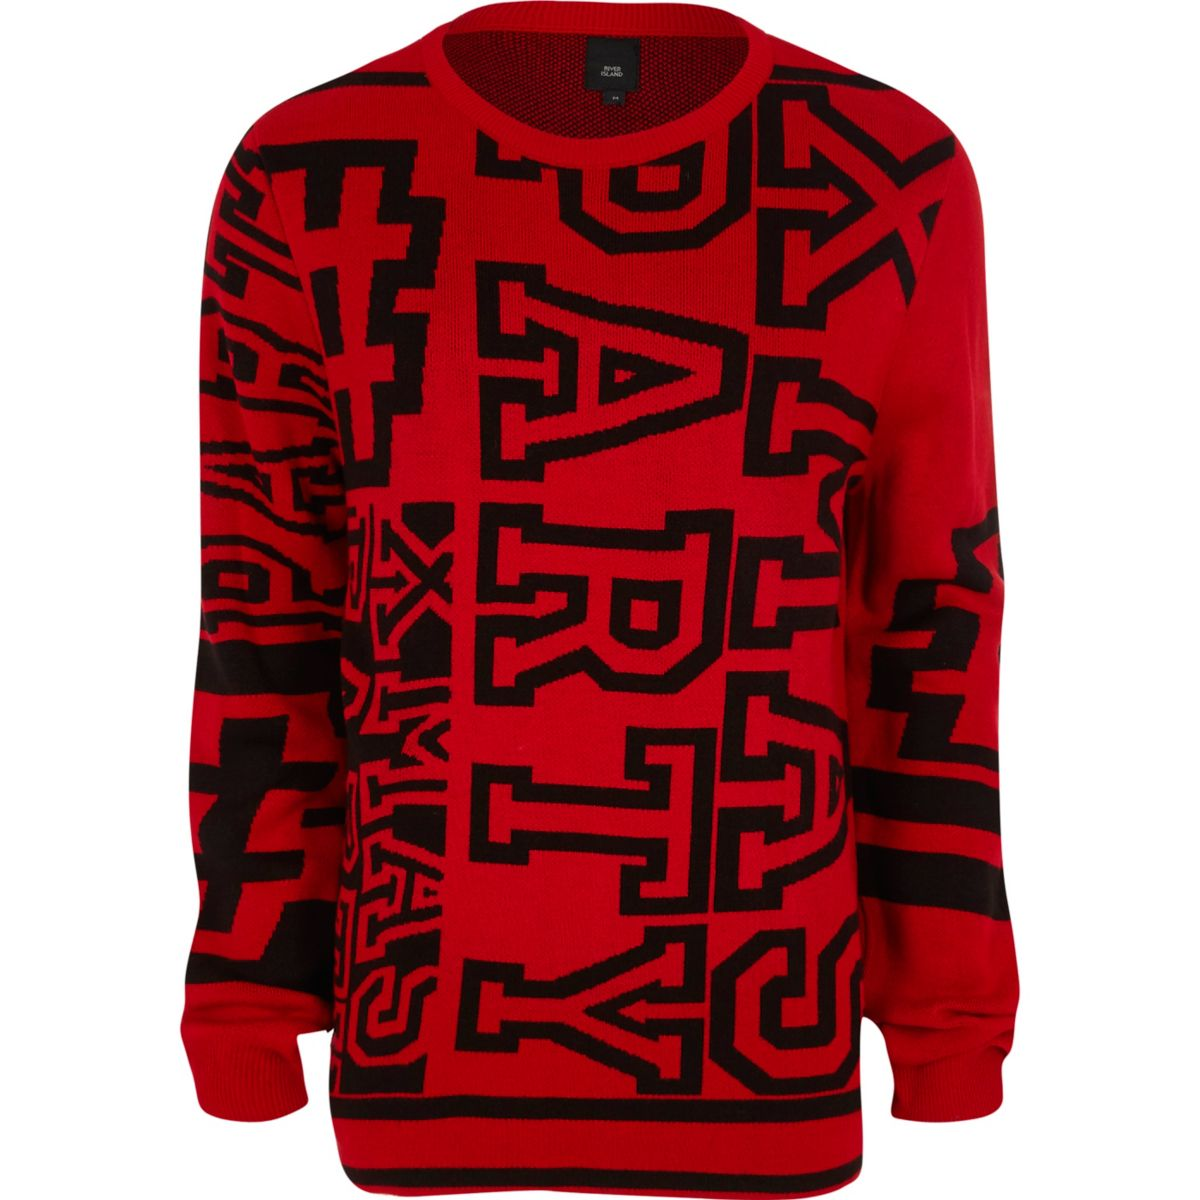 Red 'xmas party' Christmas jumper